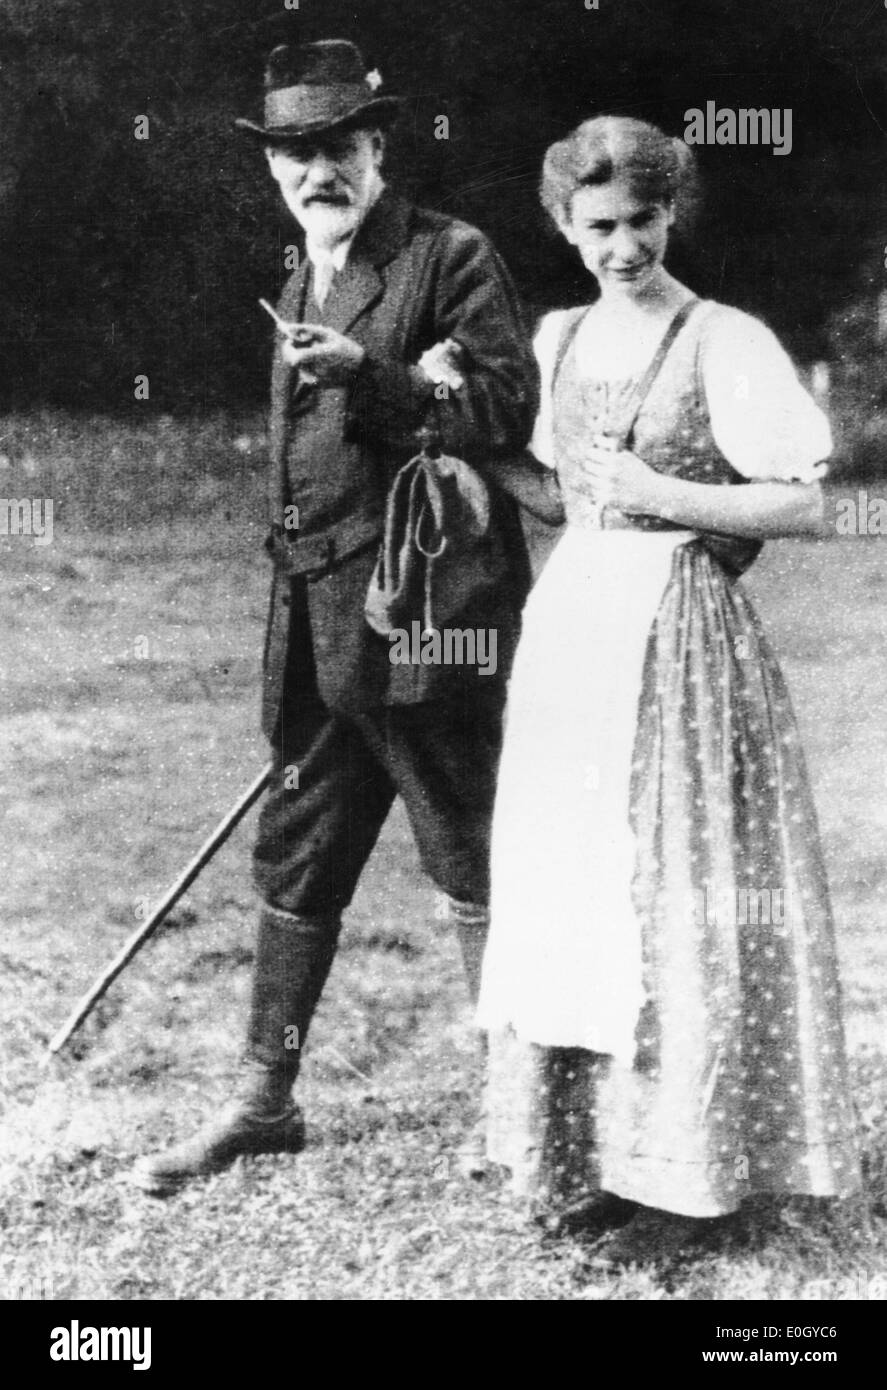 Sigmund Freud with daughter Anna Freud walking in Dolomite Alps - Stock Image